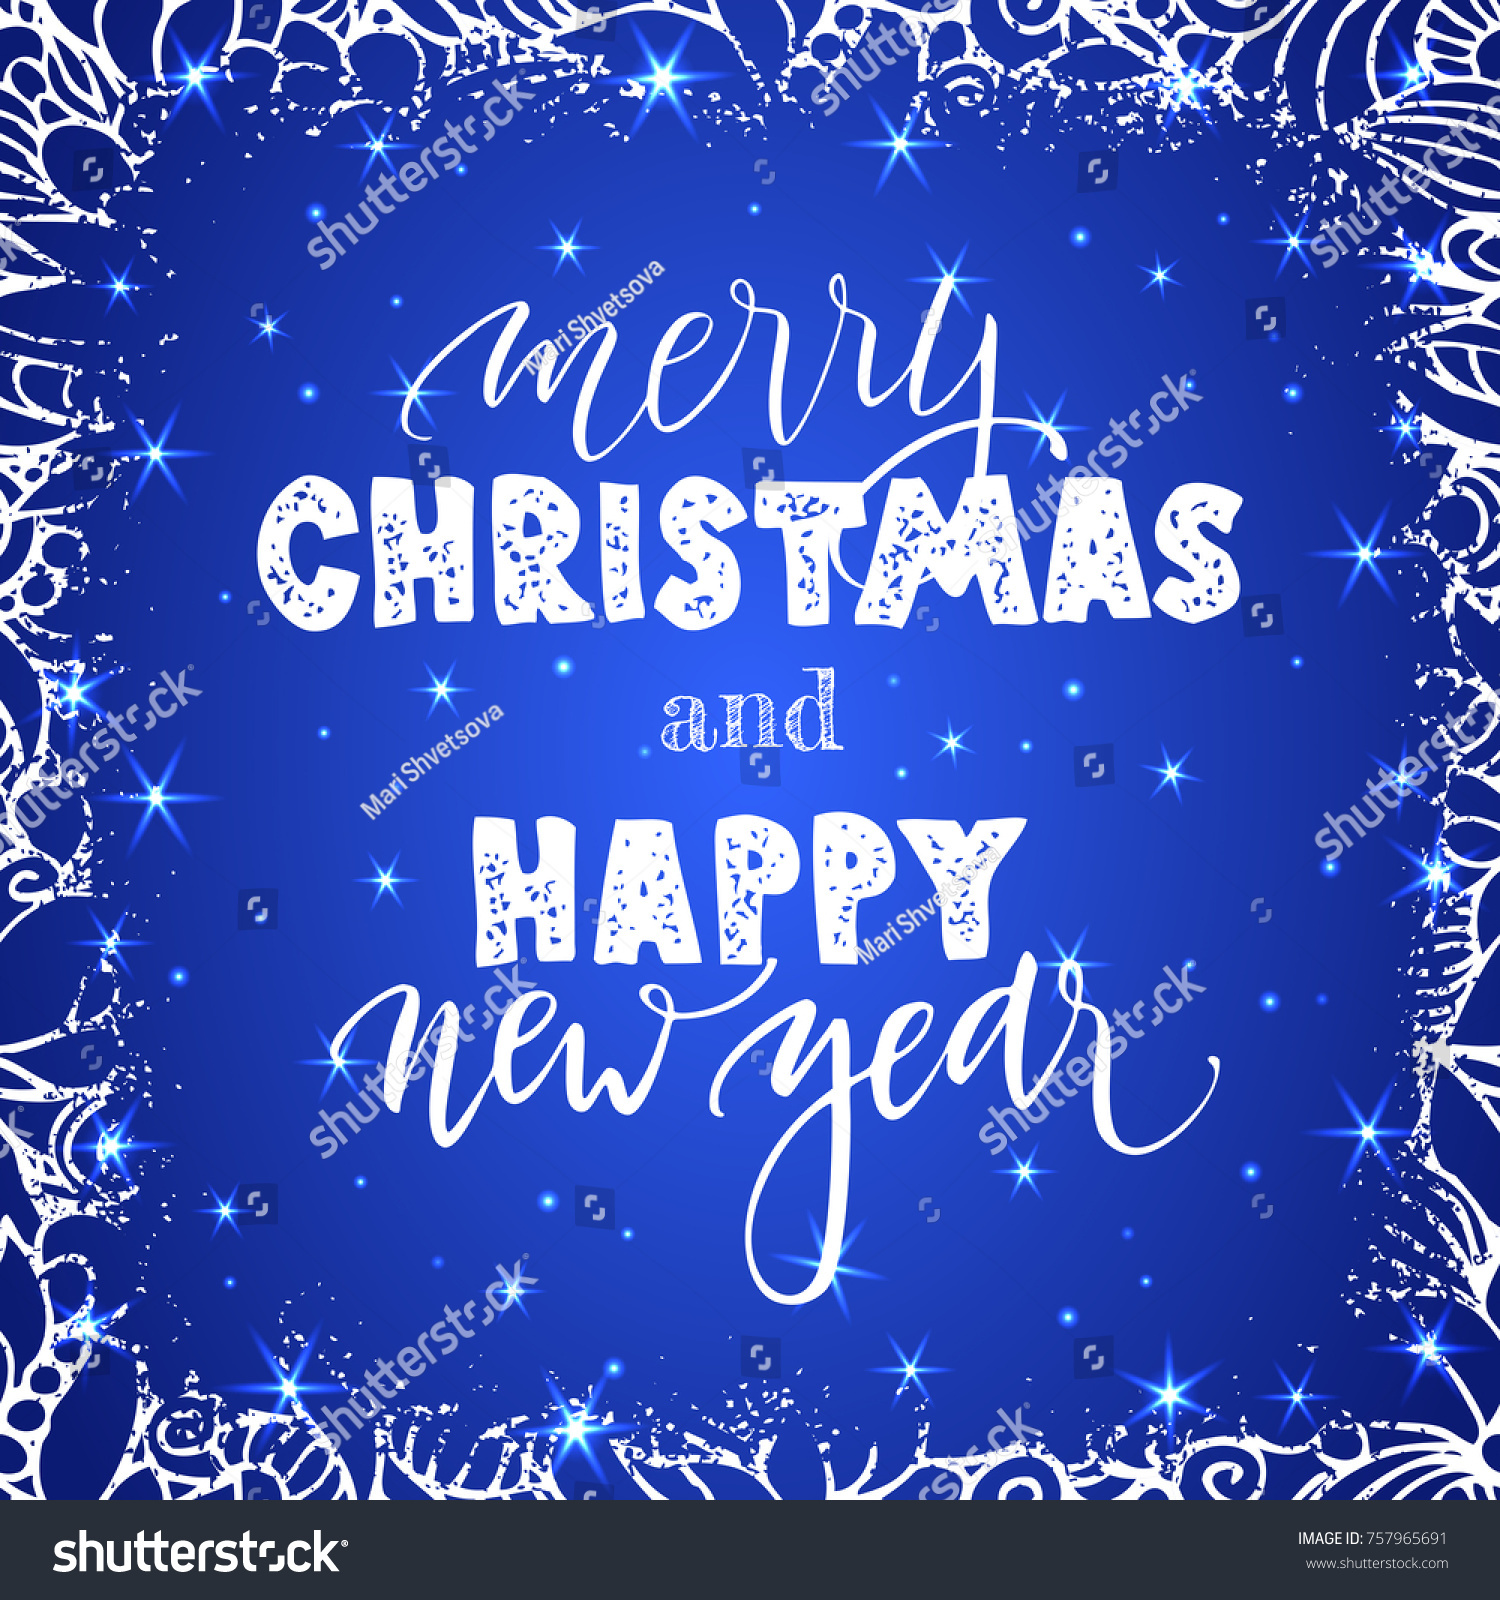 happy new year and merry christmas lettering on blue background with sparkles greeting card design